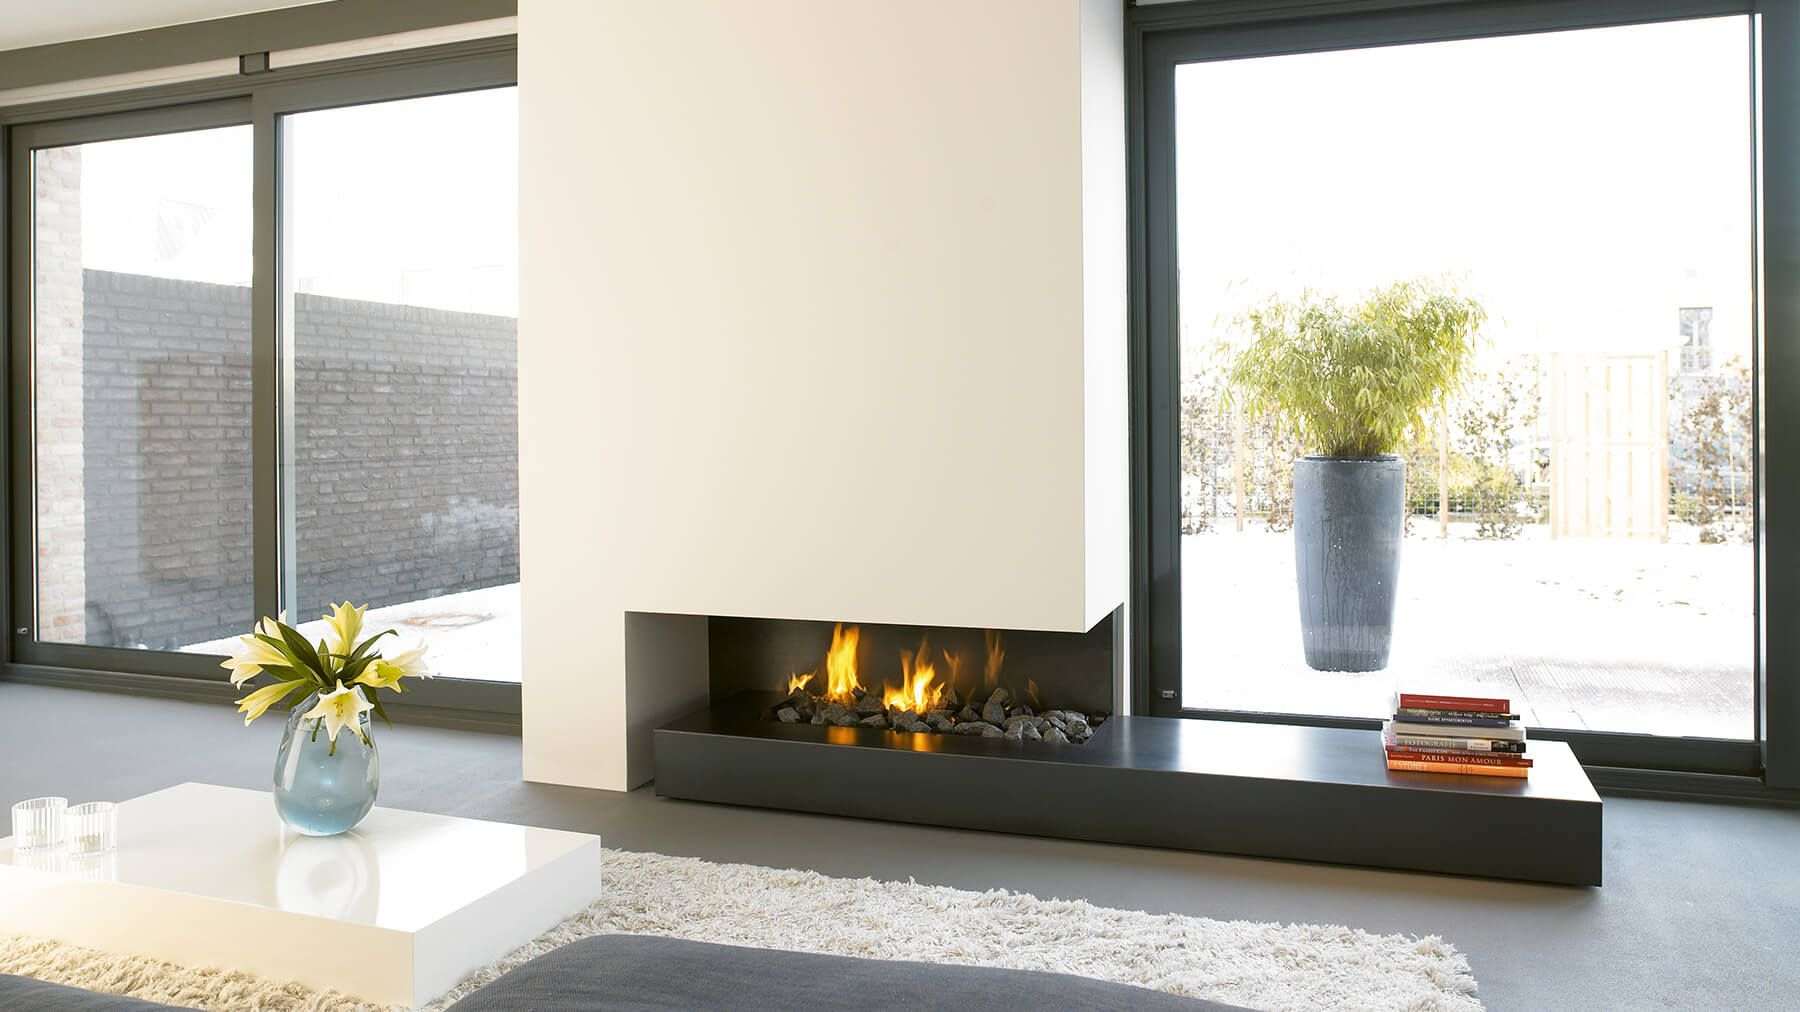 Design Modern Gas Fireplace best 25 contemporary gas fireplace ideas on pinterest modern fires bespoke fireplaces